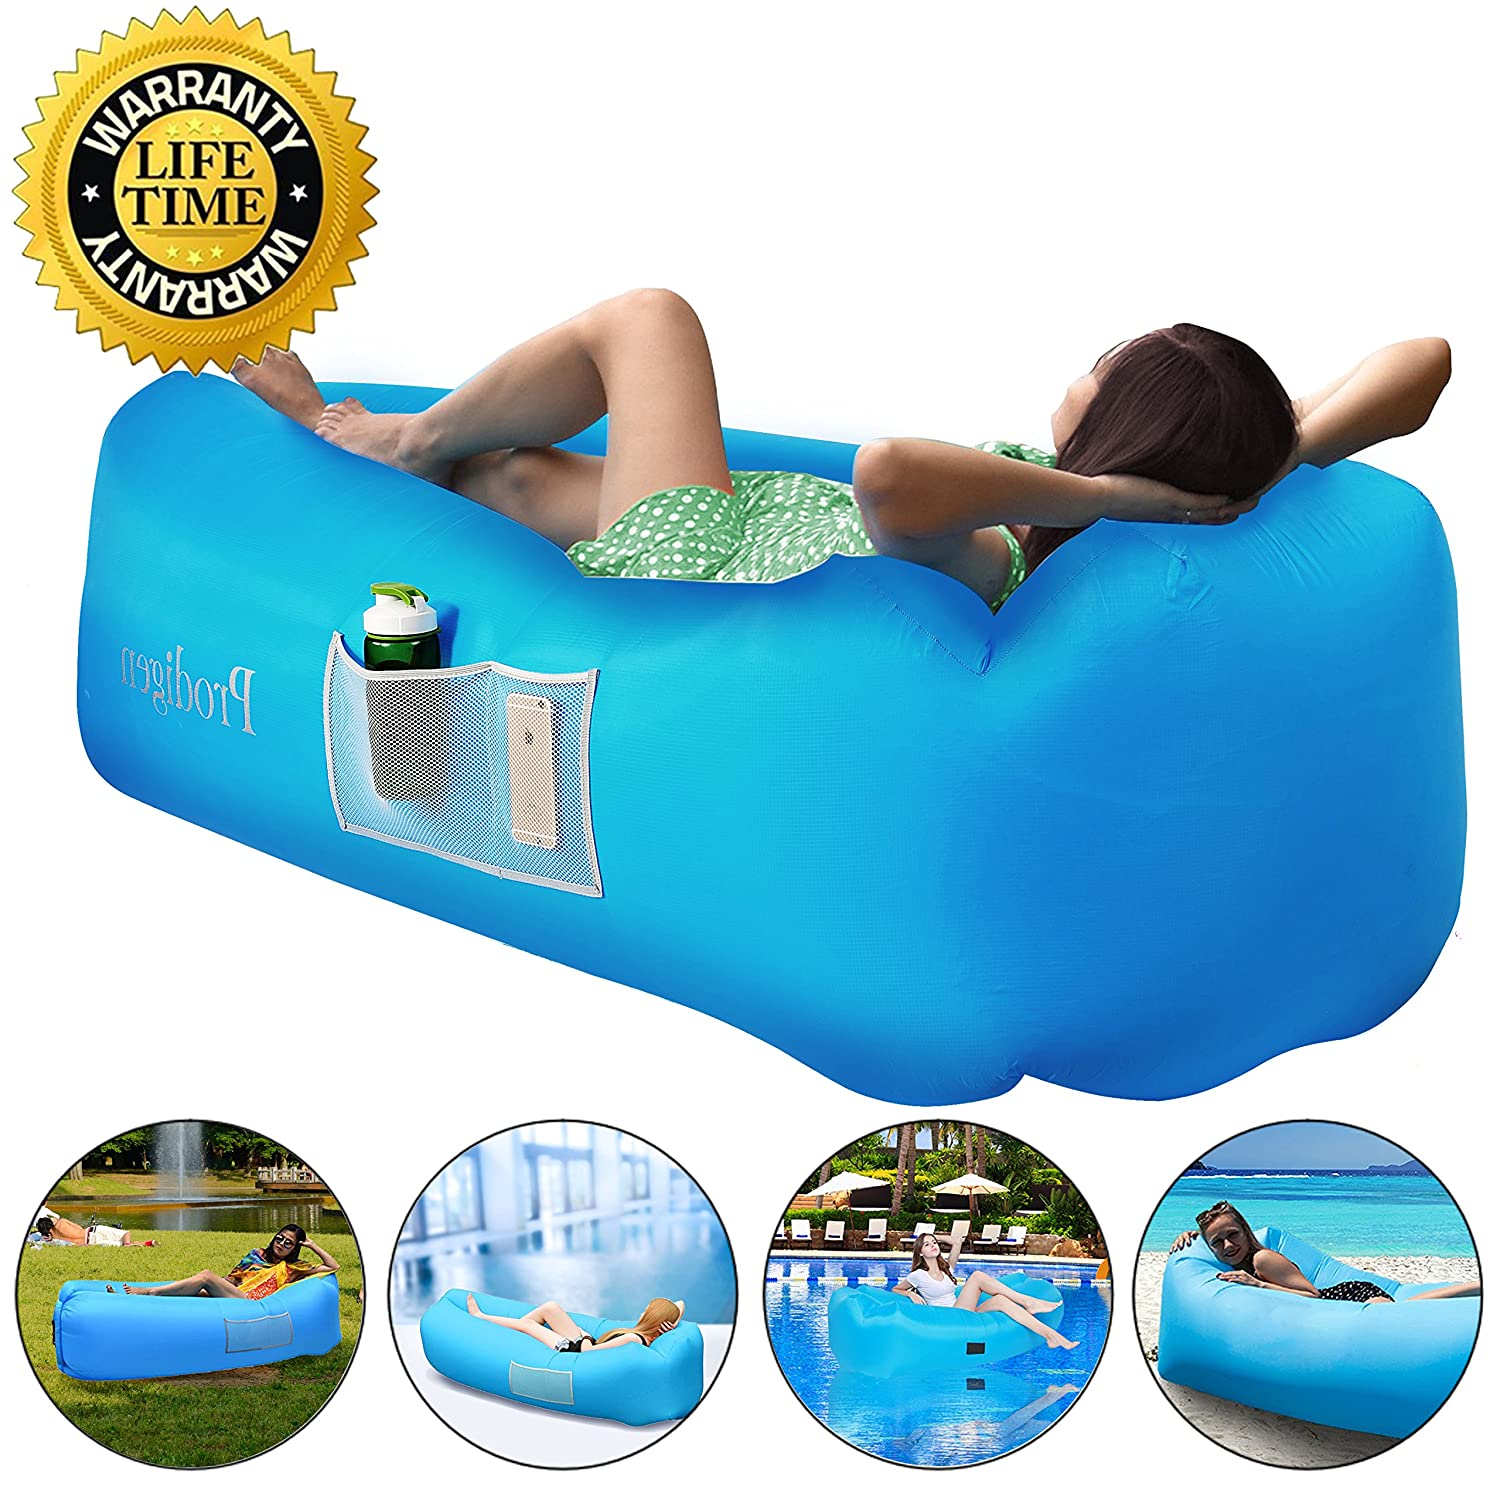 Prodigen Inflatable Lounger Chair, Air Sofa Inflatable Couch Outdoor  Anti Air Leaking Waterproof Portable Inflatable Hammock Air Couch Pool,  Floor, Camping, ...